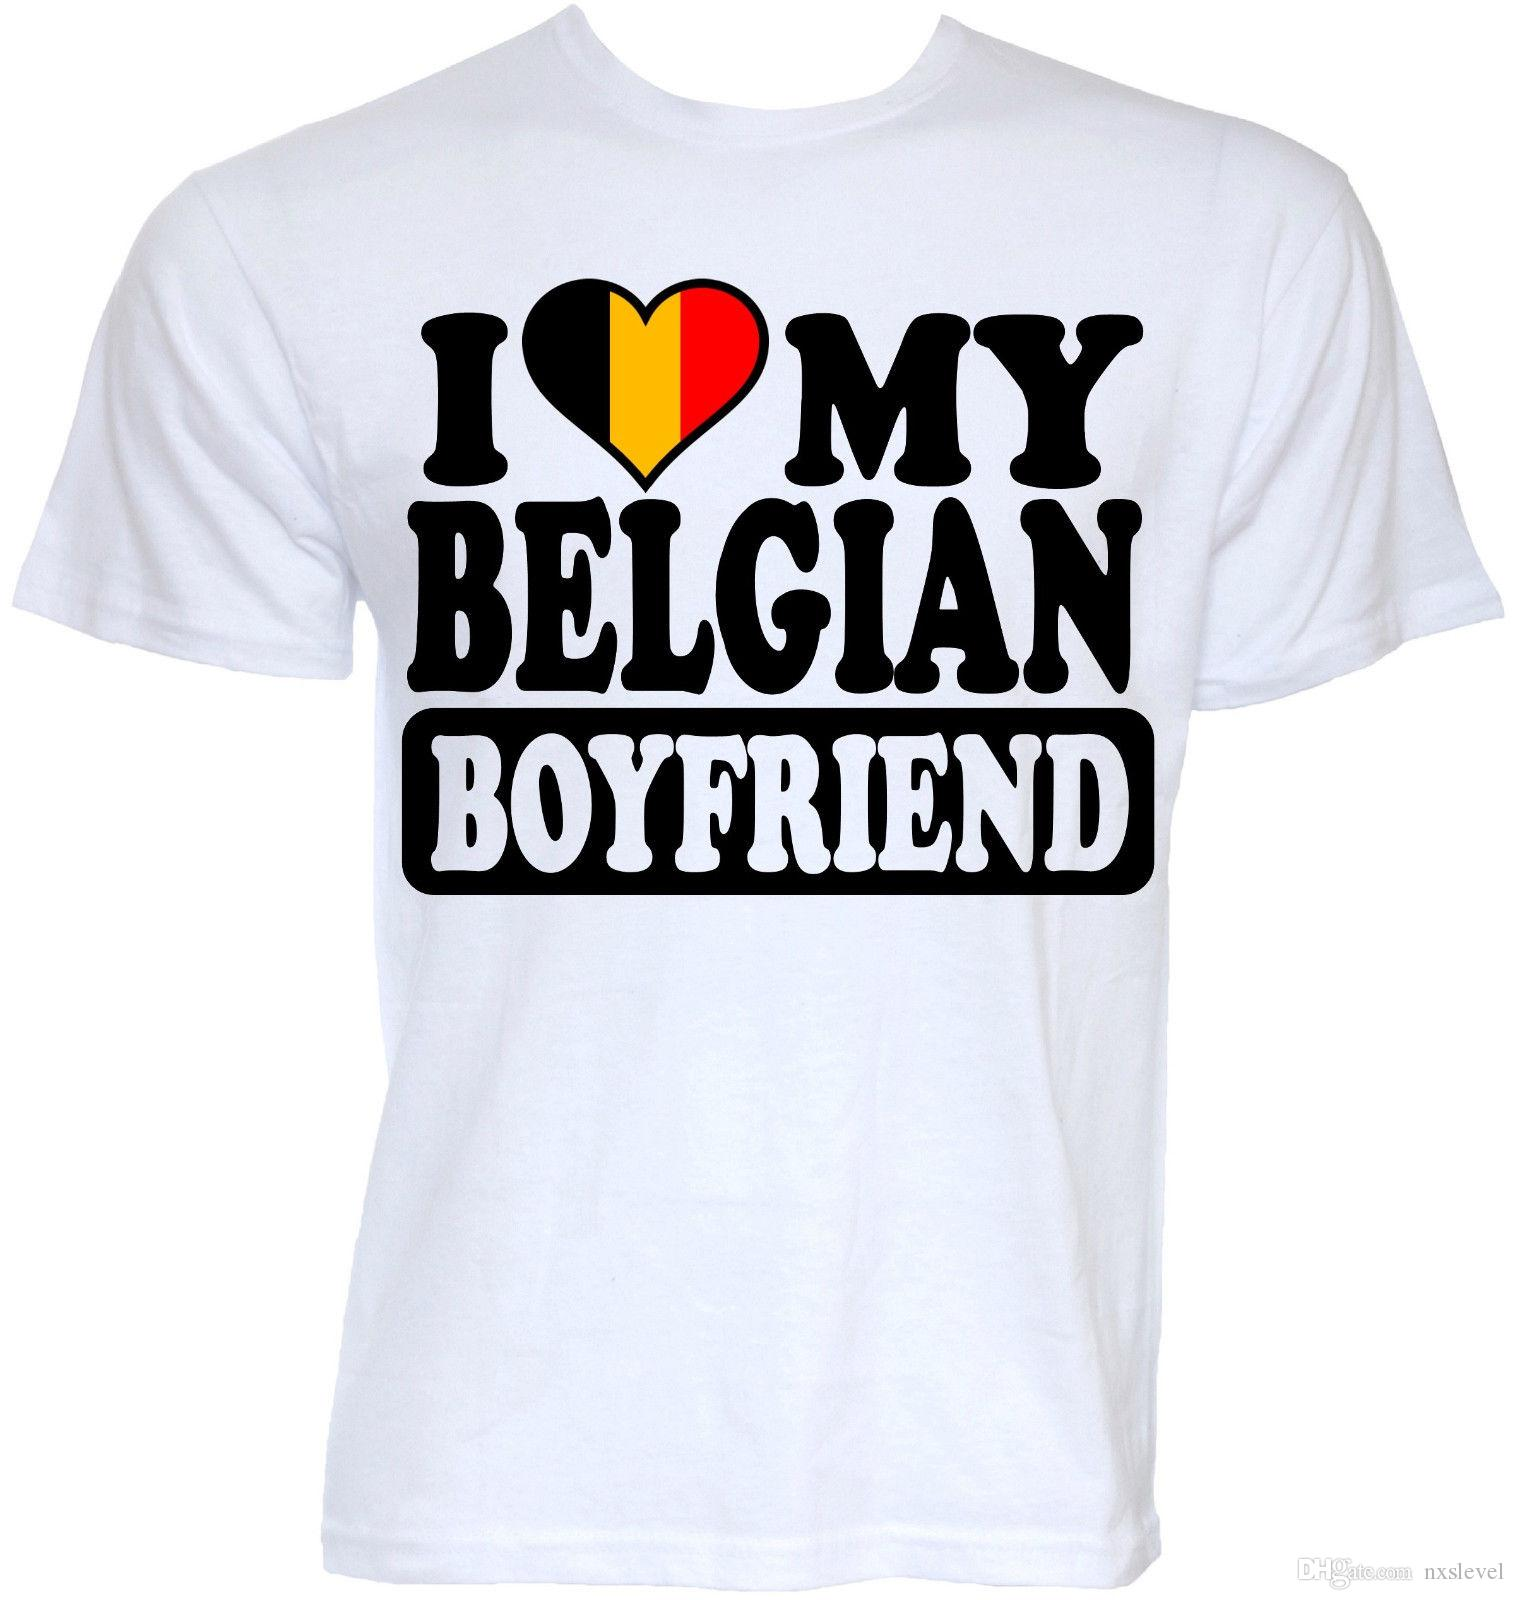 0be999c6d BELGIUM T SHIRTS MENS FUNNY NOVELTY BELGIAN BOYFRIEND RUDE FLAG GIFTS T  SHIRT Cool T Shirt Companies 24 Hour T Shirt From Nxslevel, $10.21|  DHgate.Com